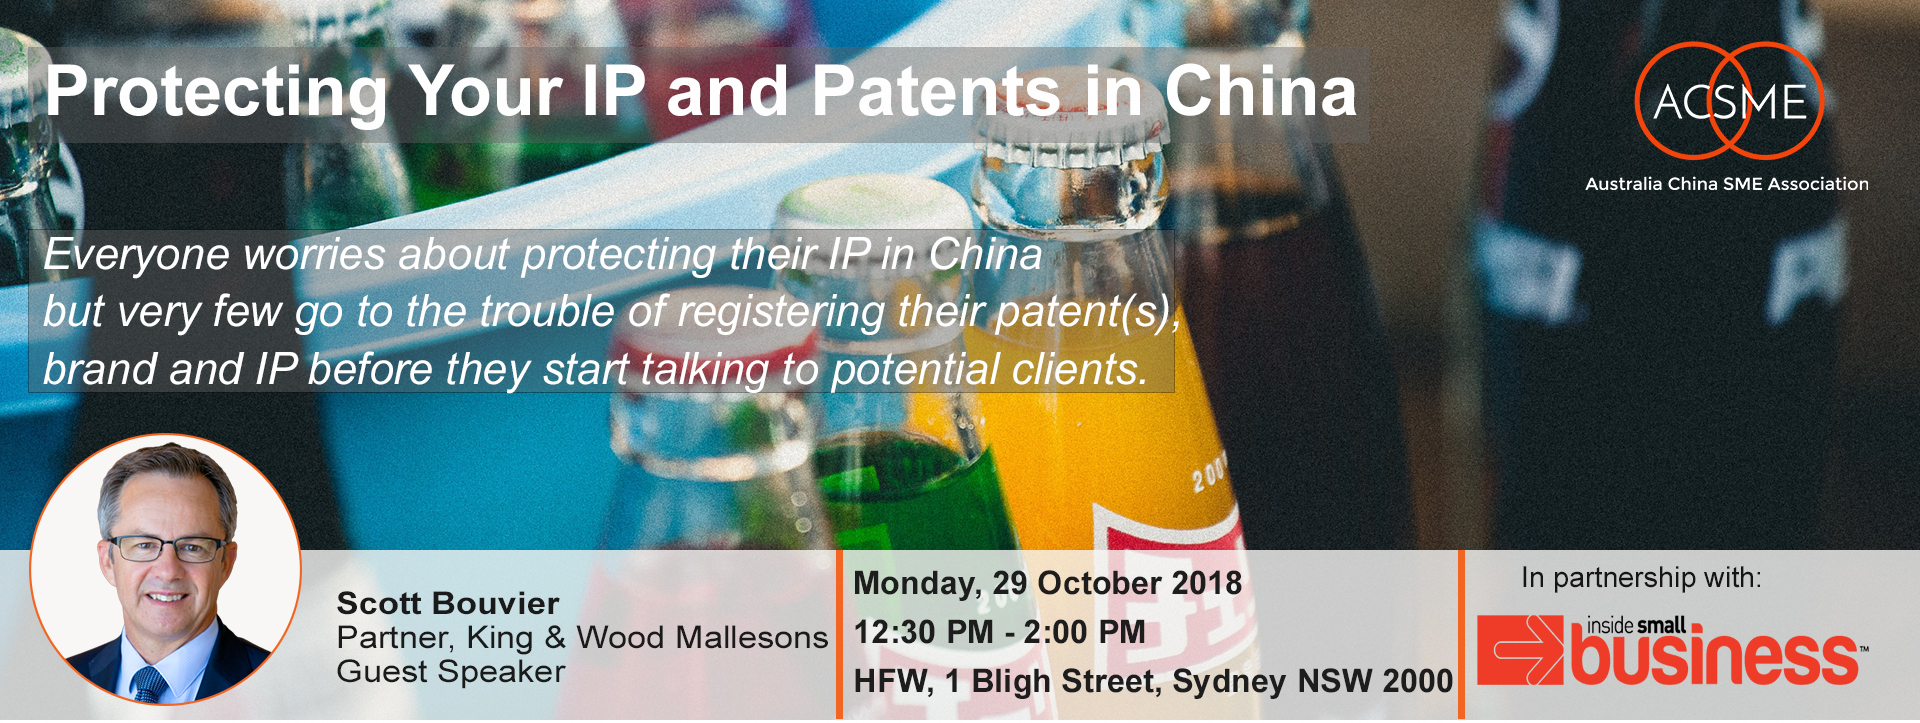 Protecting Your IP and Patents in China-website new.jpg